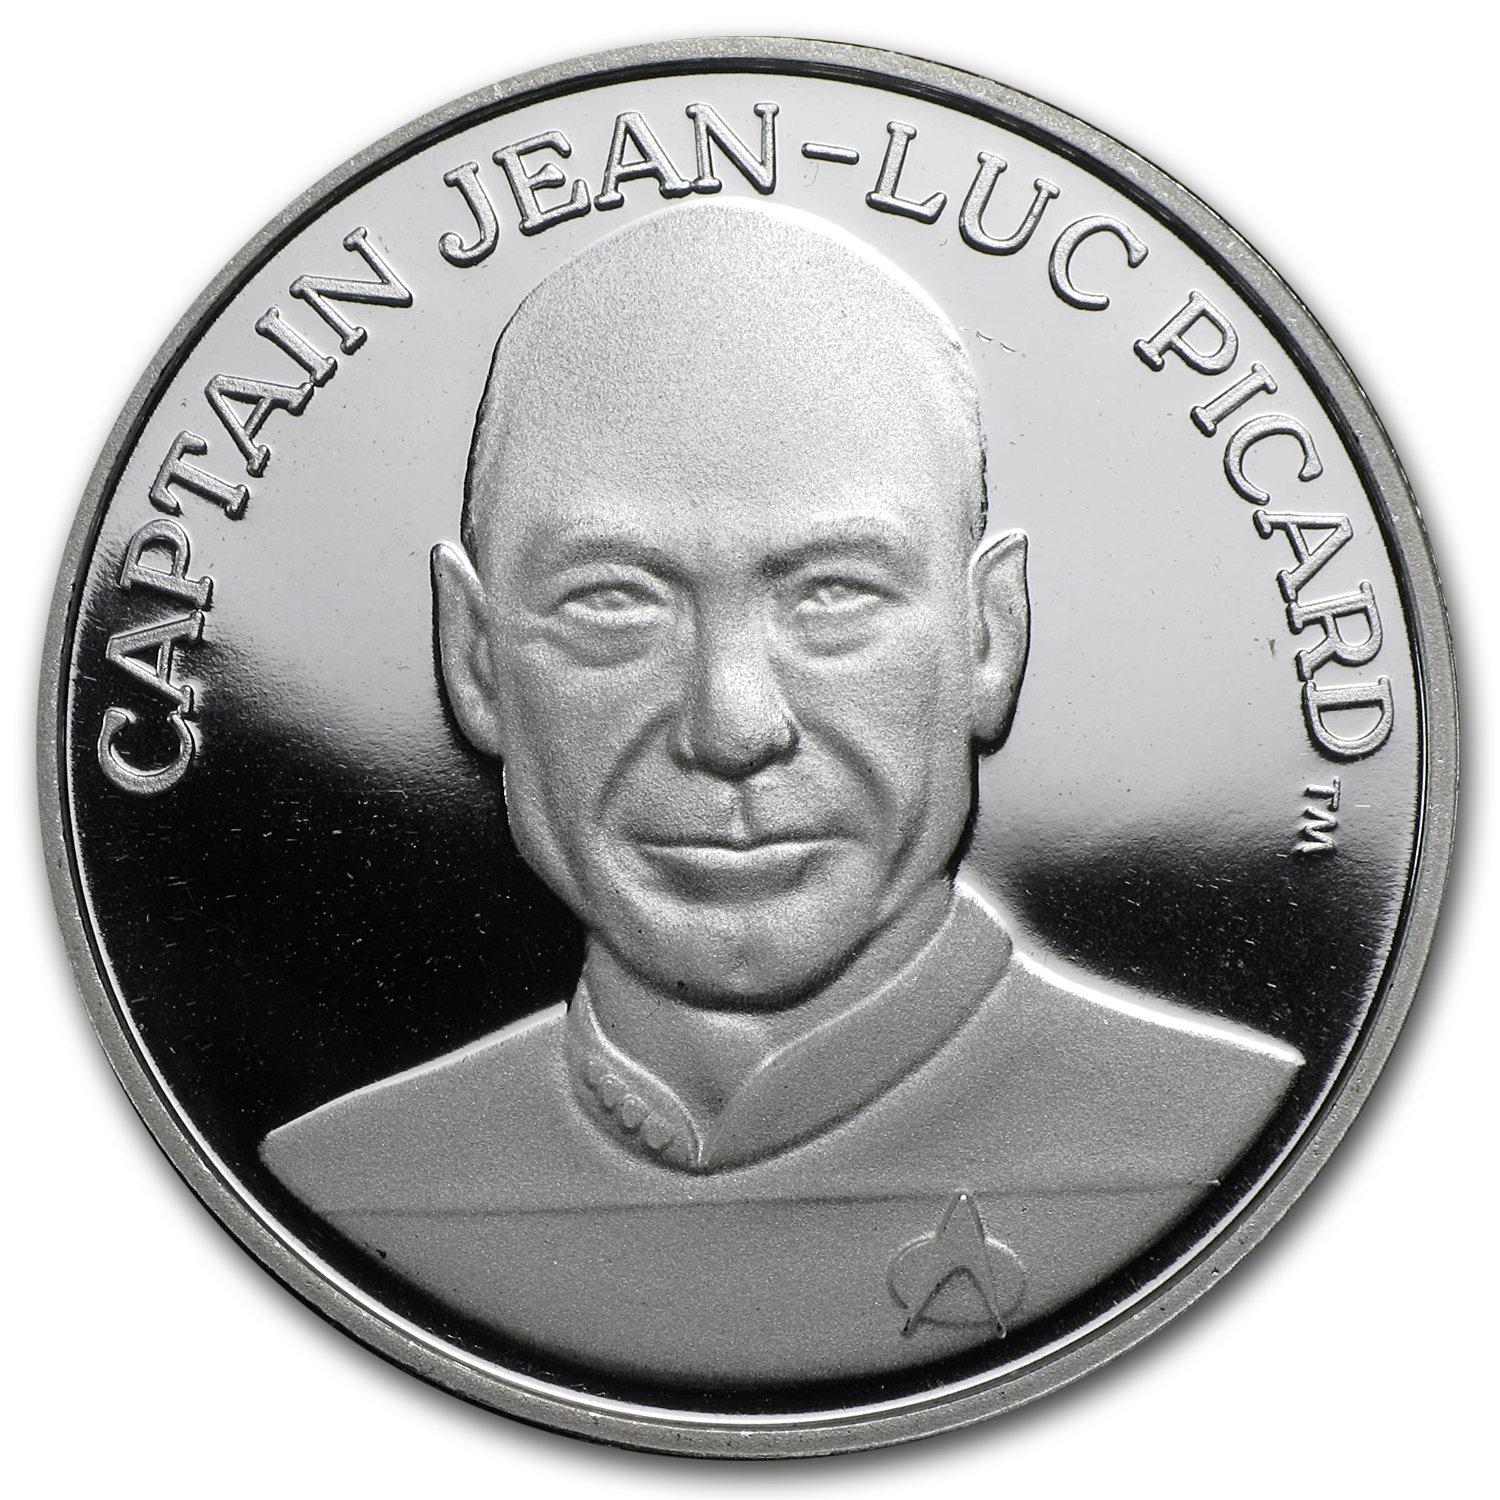 1 oz Silver Rounds - Star Trek (Captain Jean-Luc Picard)